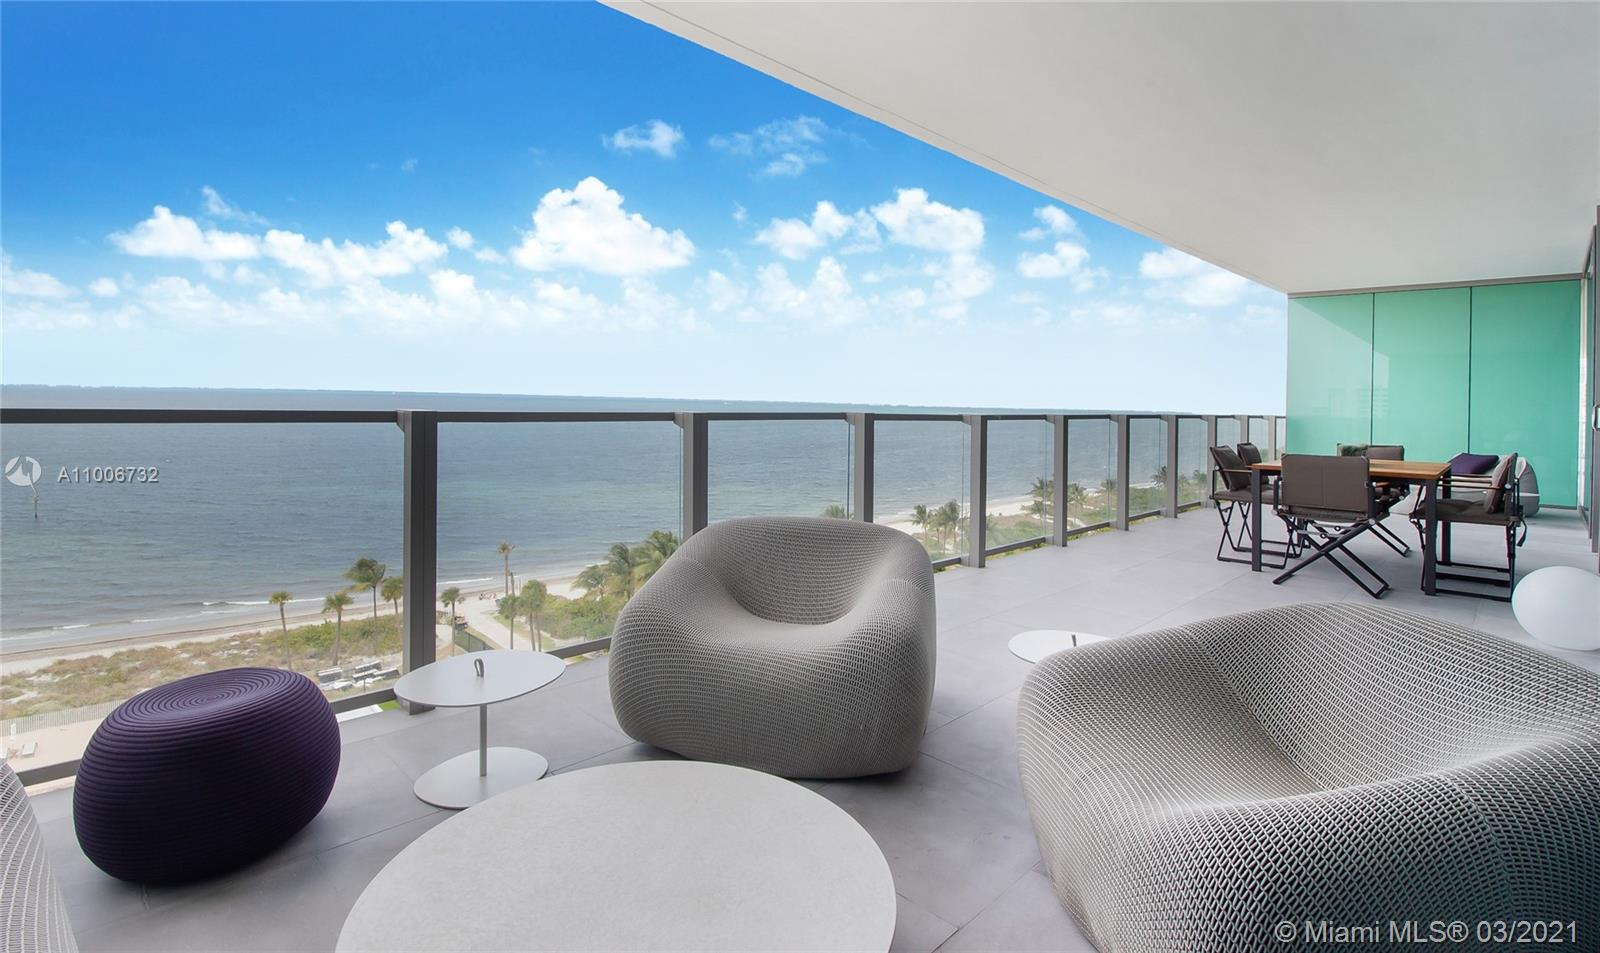 At OCEANA-KEY BISCAYNE you will enjoy the luxurious beach and sea lifestyle while being close to vibrant Miami, South Beach, Wynwood, Design District.  This 3,600 + sq.ft. beachfront apartment designed by architect and superyacht designer, Ramon Alonso of RADYCA studio fame,  to incorporate the newest and most innovative as well as sustainable material.  Nabuk Italian leather, open grain wood, natural stone, metal panels and reflective glass surfaces were key elements used in this multimillion dollar renovation, without making it heavy or imbalance, while enhancing the stunning ocean views.  Truly a work of art!